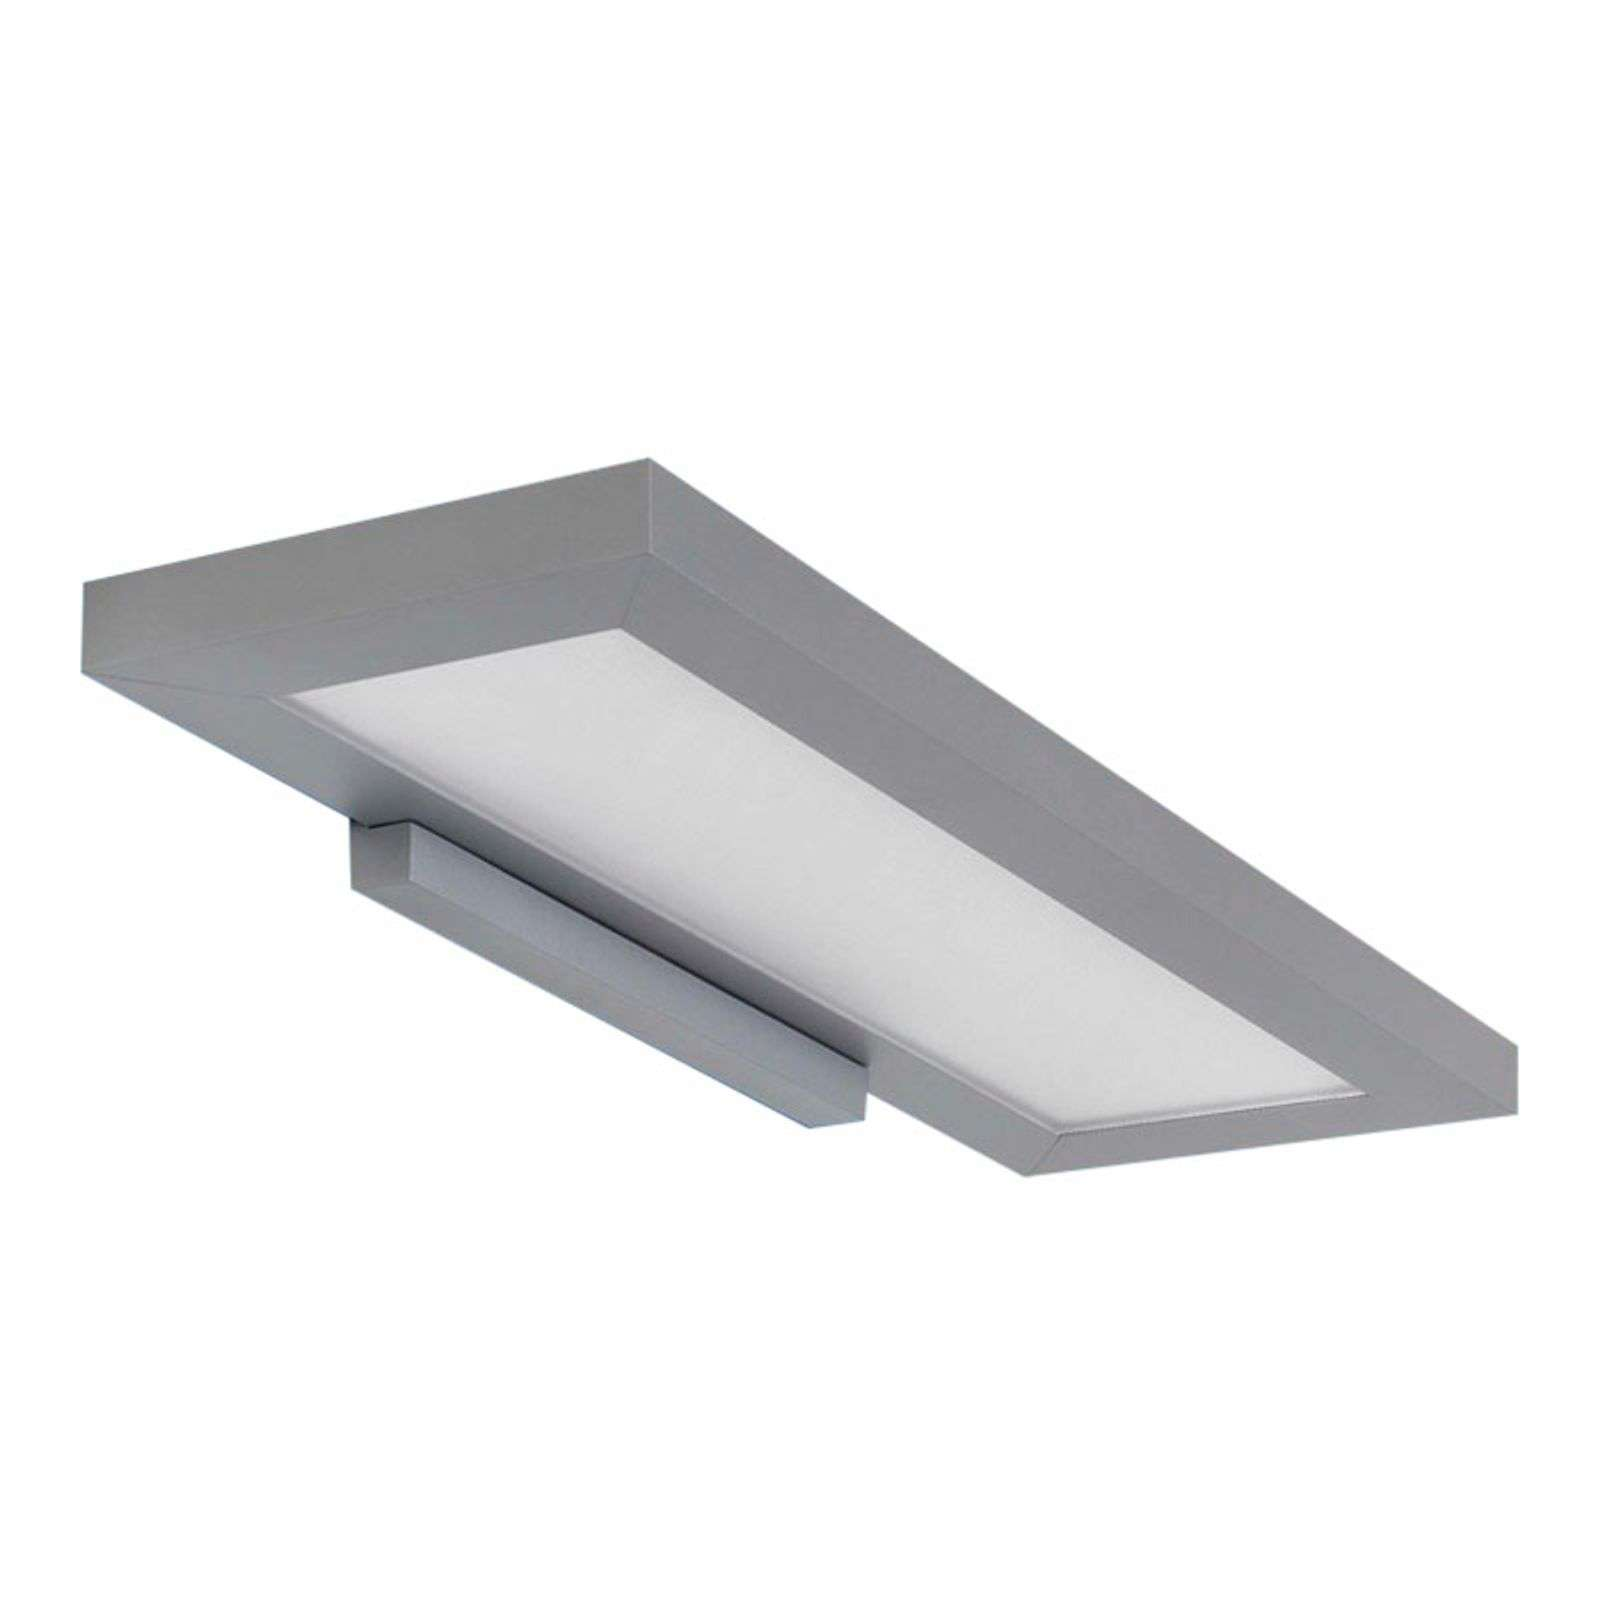 Applique a LED CWP con diffusore opale, 75 W